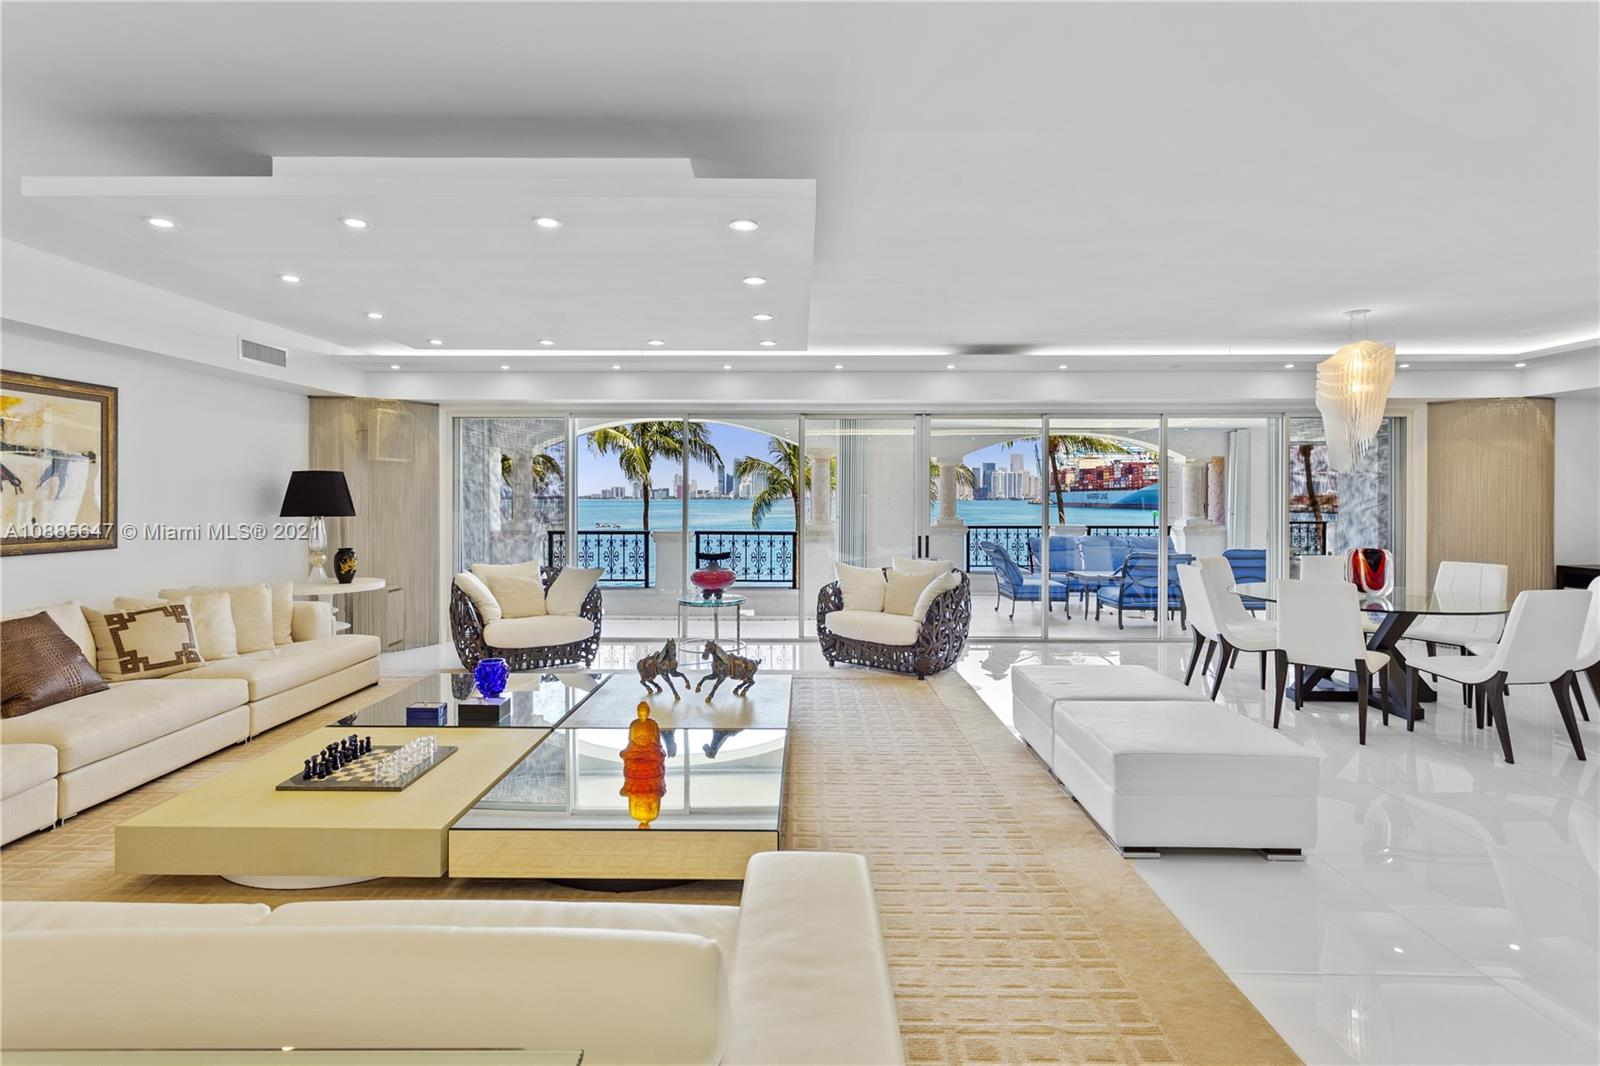 FISHER ISLAND'S BEST VALUE FOR SPRAWLING FAMILY CONDO WITH DIRECT DOWNTOWN MIAMI VIEWS & MAGICAL SUNSETS DRAPING OVER THE BAY! White Finish Living Room w/ Bay Views. Fully Renovated Unit w/ 9FT in 6,300 Interior SF + 1,500 SF Terraces. Converted into 4 Bed/4.5 Bath + Office w/ White Marble t/o. Family Room w/ Custom Lit Design Wall + 2 Dining Areas. Eat-in Chef's Kitchen Fully Equipped w/ Gas Stove, 2 Ovens, 2 Samsung Refrigerators, 3 Warming Drawers, 2 Kitchen Aid Dishwashers. Gold-Framed Wine Refrigerator for 240 Bottles. Bayfront Master w/ Seating Area + Private Terrace. Large Master Bath Wrapped in Cream Marble + His/Hers Closets. 3 Large Guest Rooms w/ En-Suite Baths & Large Terraces + Service Quarter's w/ Separate Entrance. 2 Car/1 Golf Cart Space + 2 Storage. SOLD W/ OUT MEMBERSHIP.